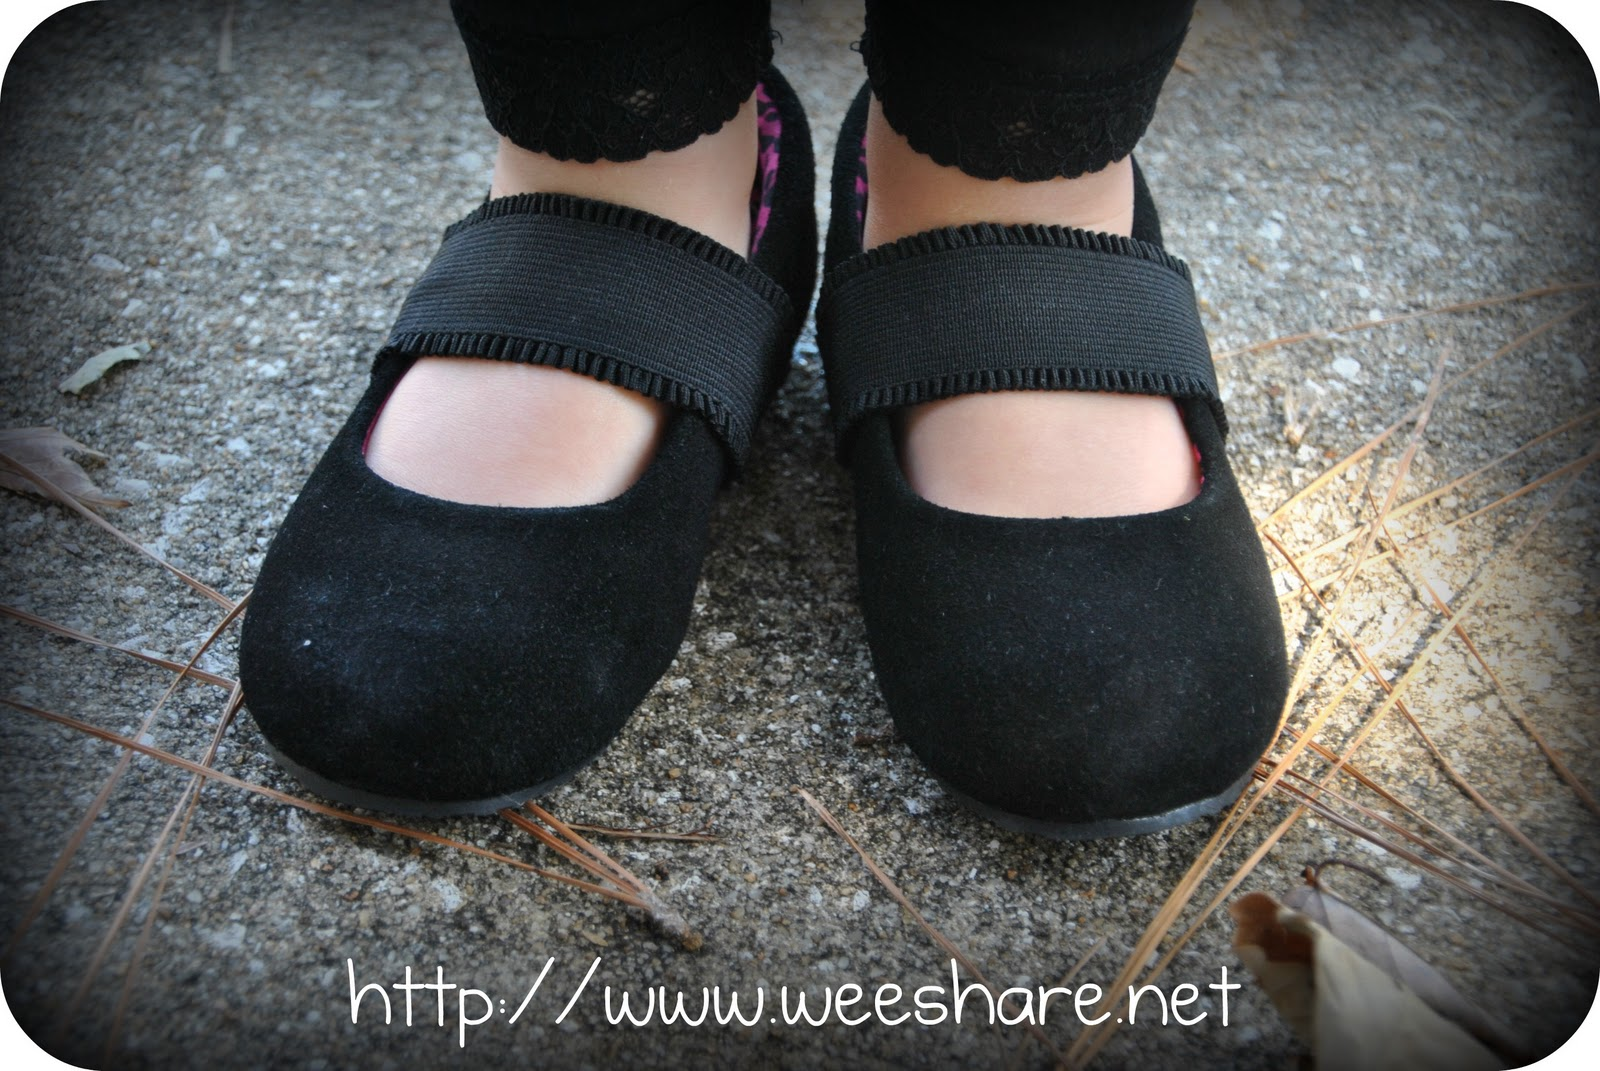 Me and My Feet Review + $50 Gift Certificate Giveaway | Wee Share